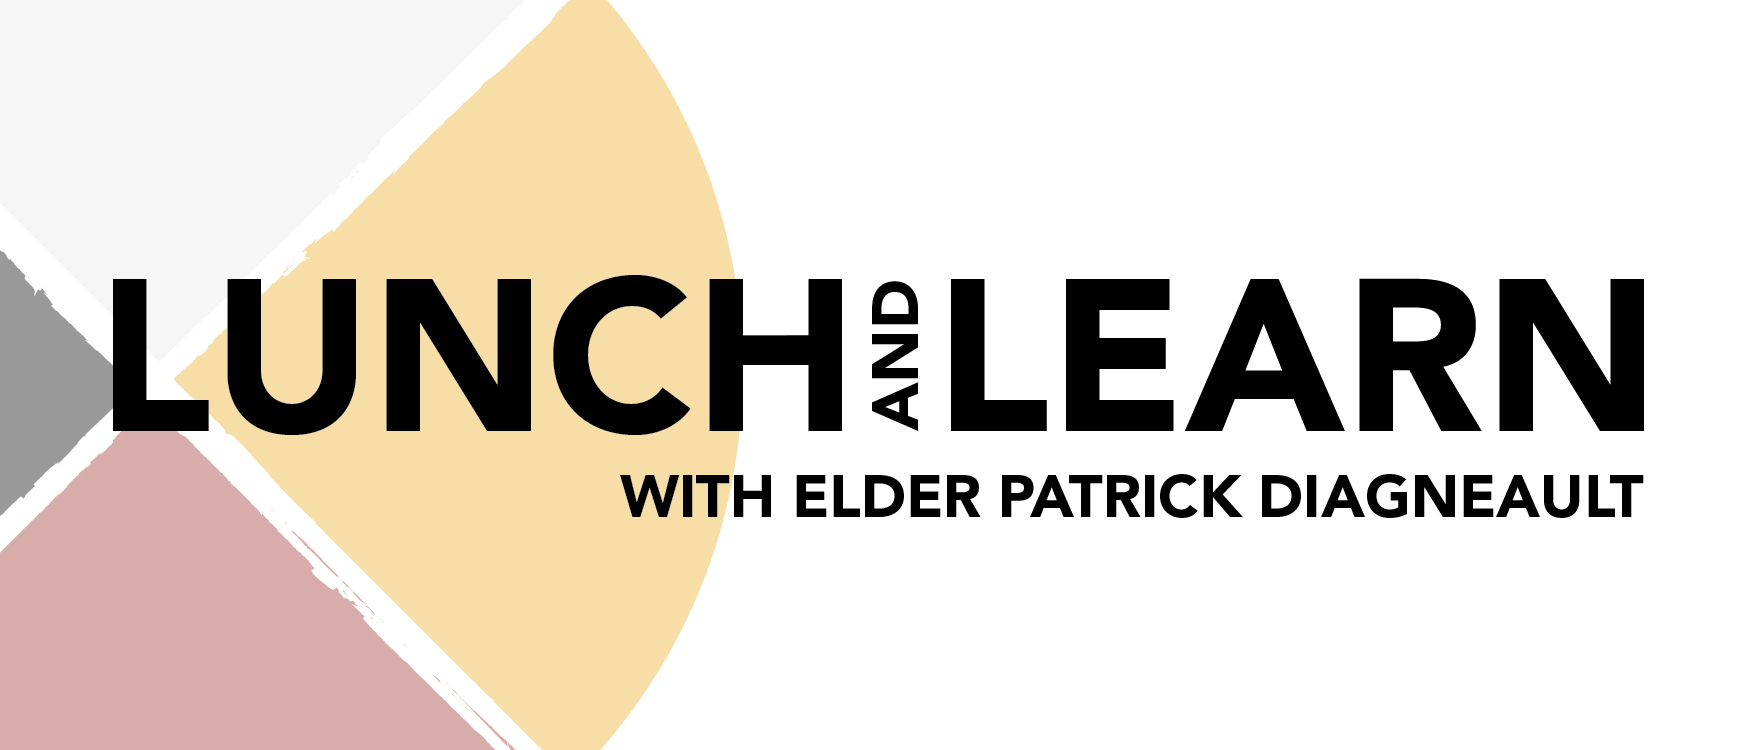 Lunch and Learn with Elder Patrick Diagneault